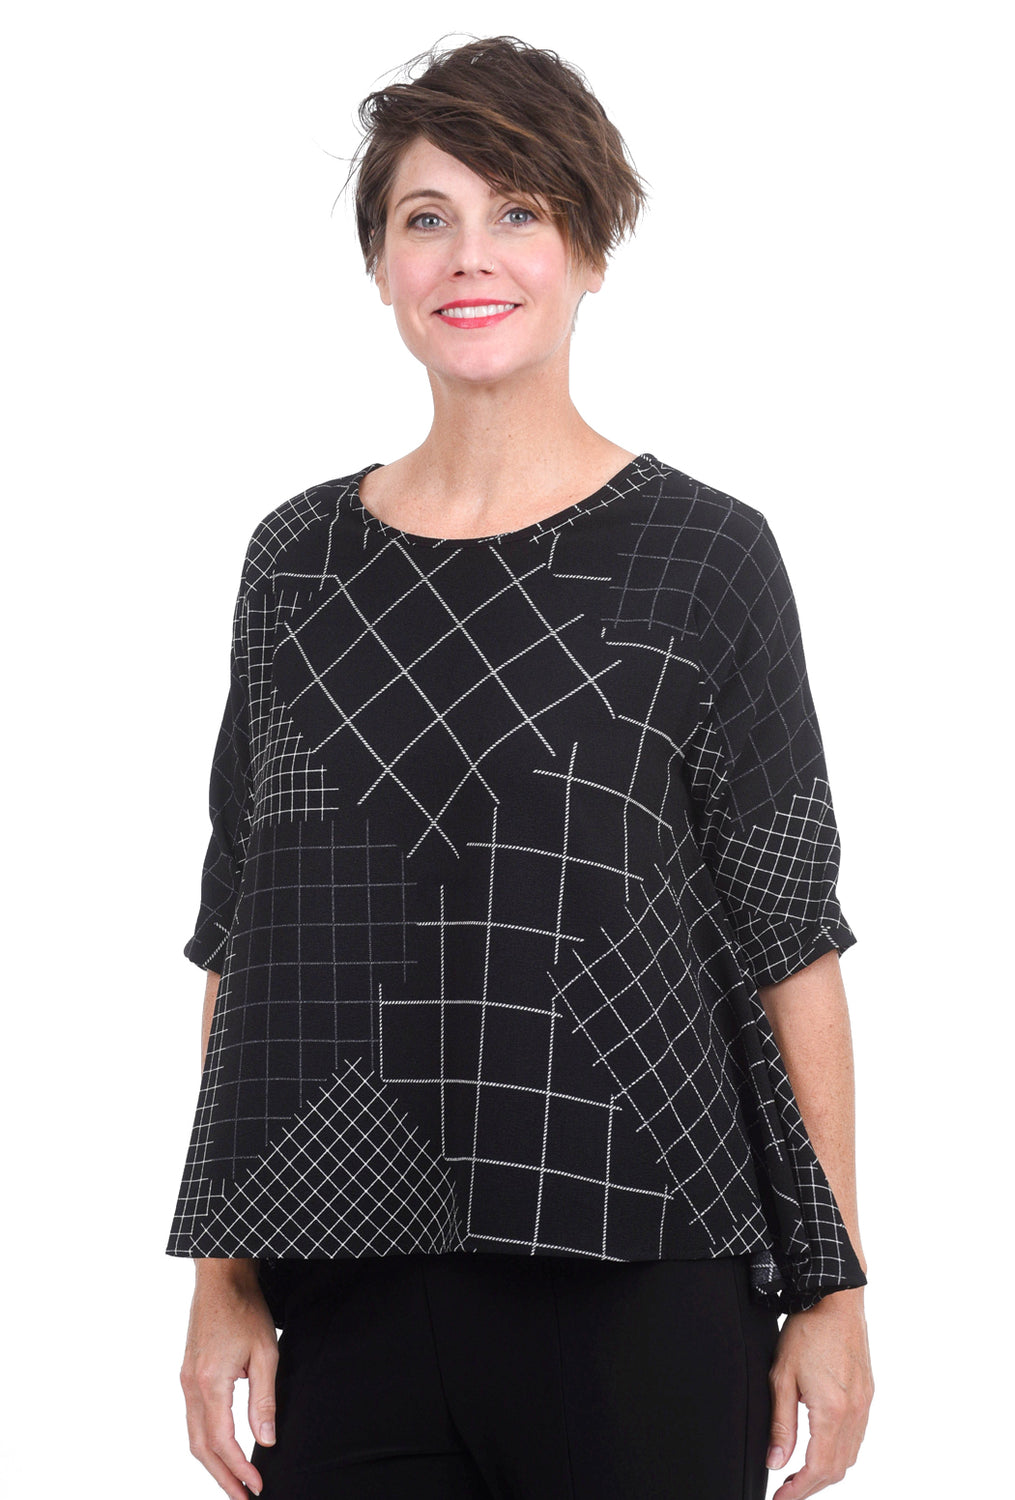 Moonlight A-Line Diamond Check Blouse, Black